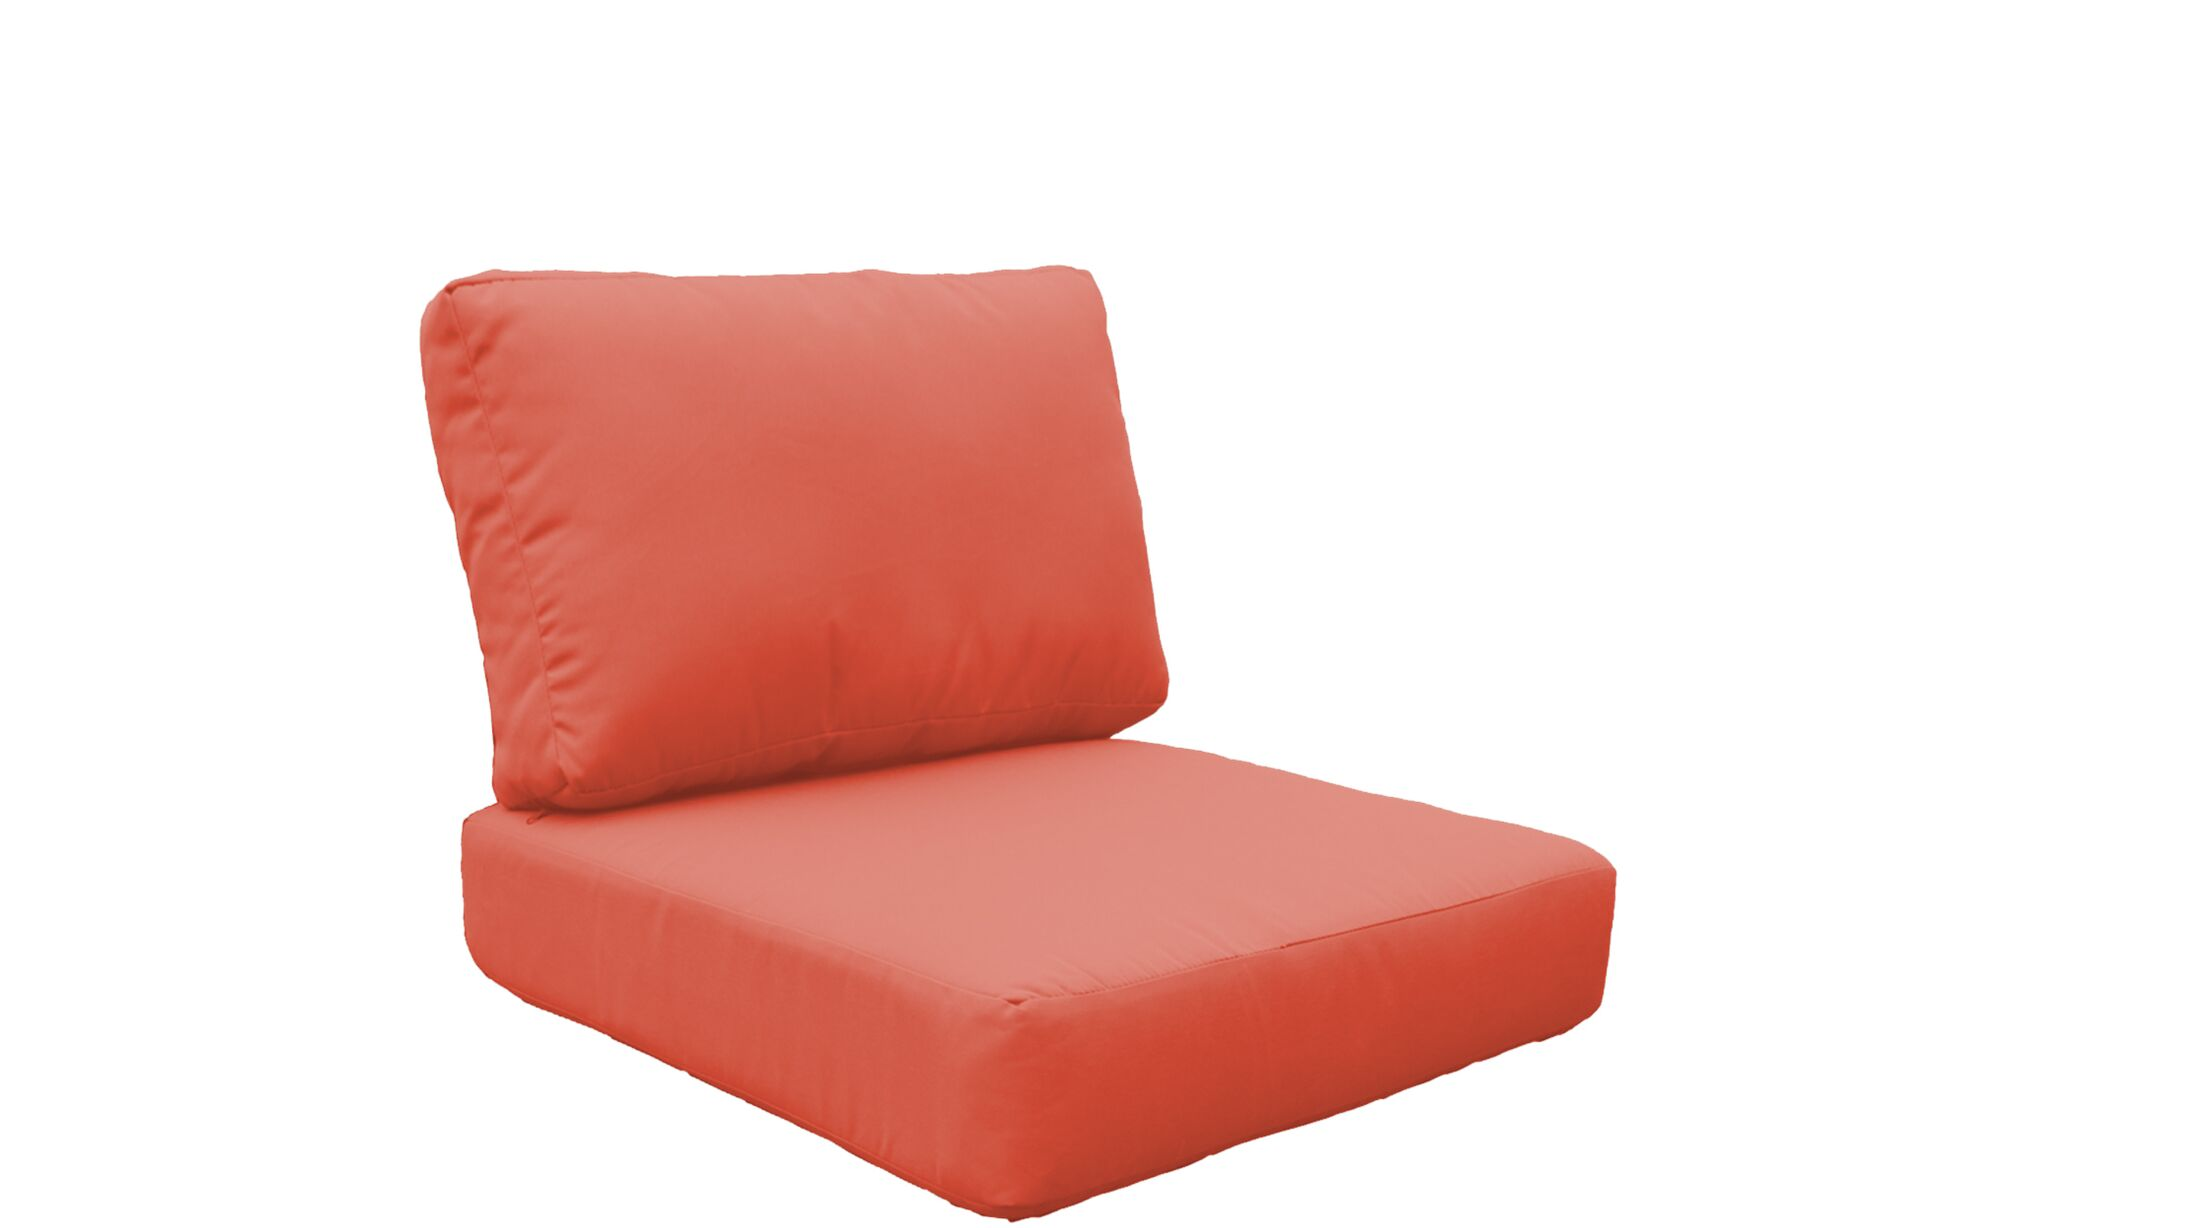 Fairmont 8 Piece Outdoor�Lounge Chair Cushion Set Fabric: Tangerine